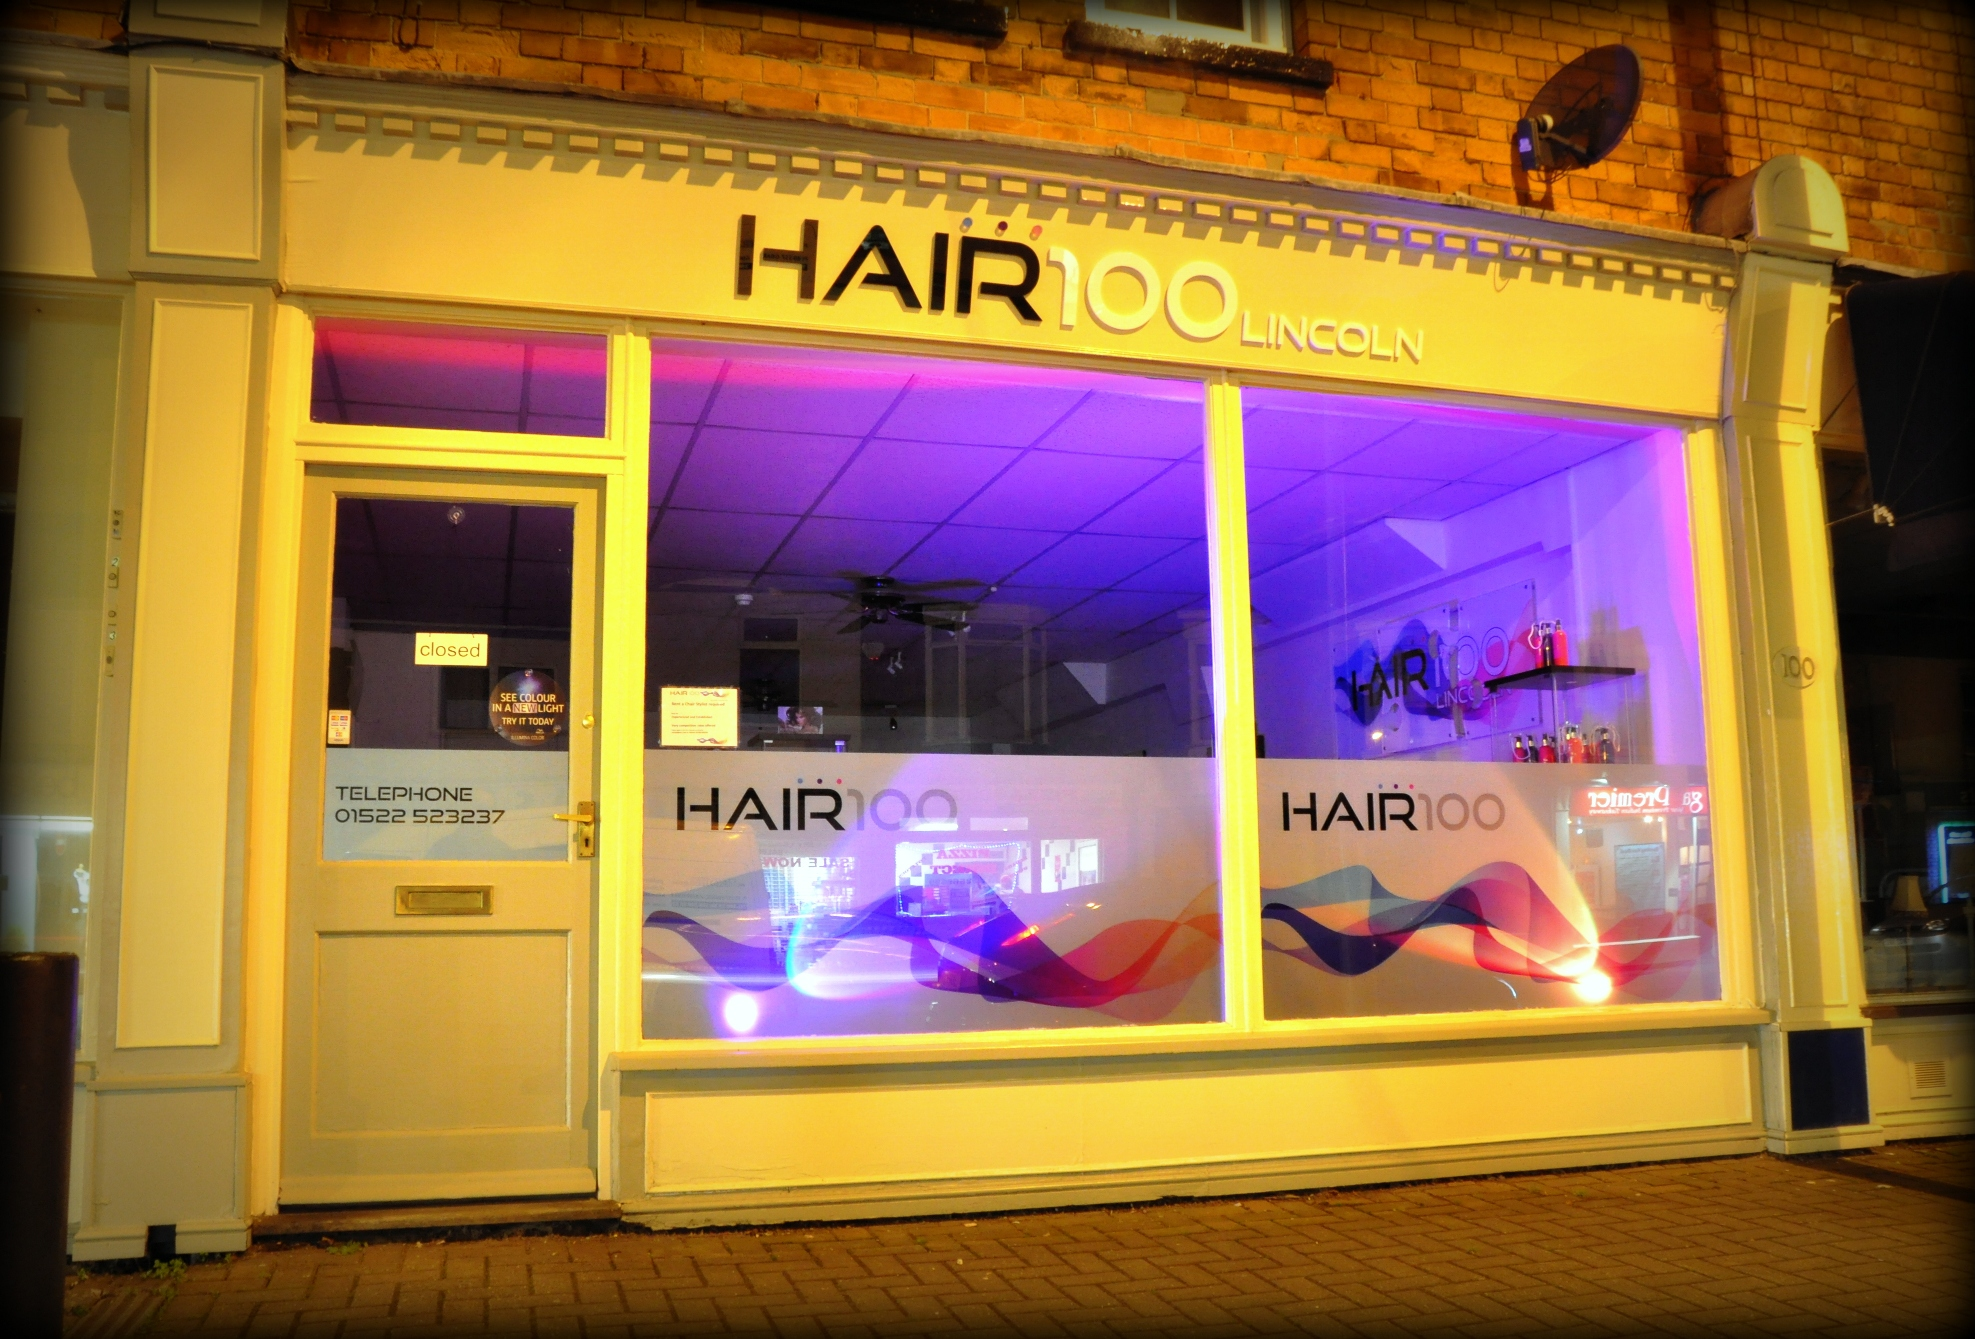 Hair 100 lincoln is a new hair salon to open on burton for A cut above the rest salon